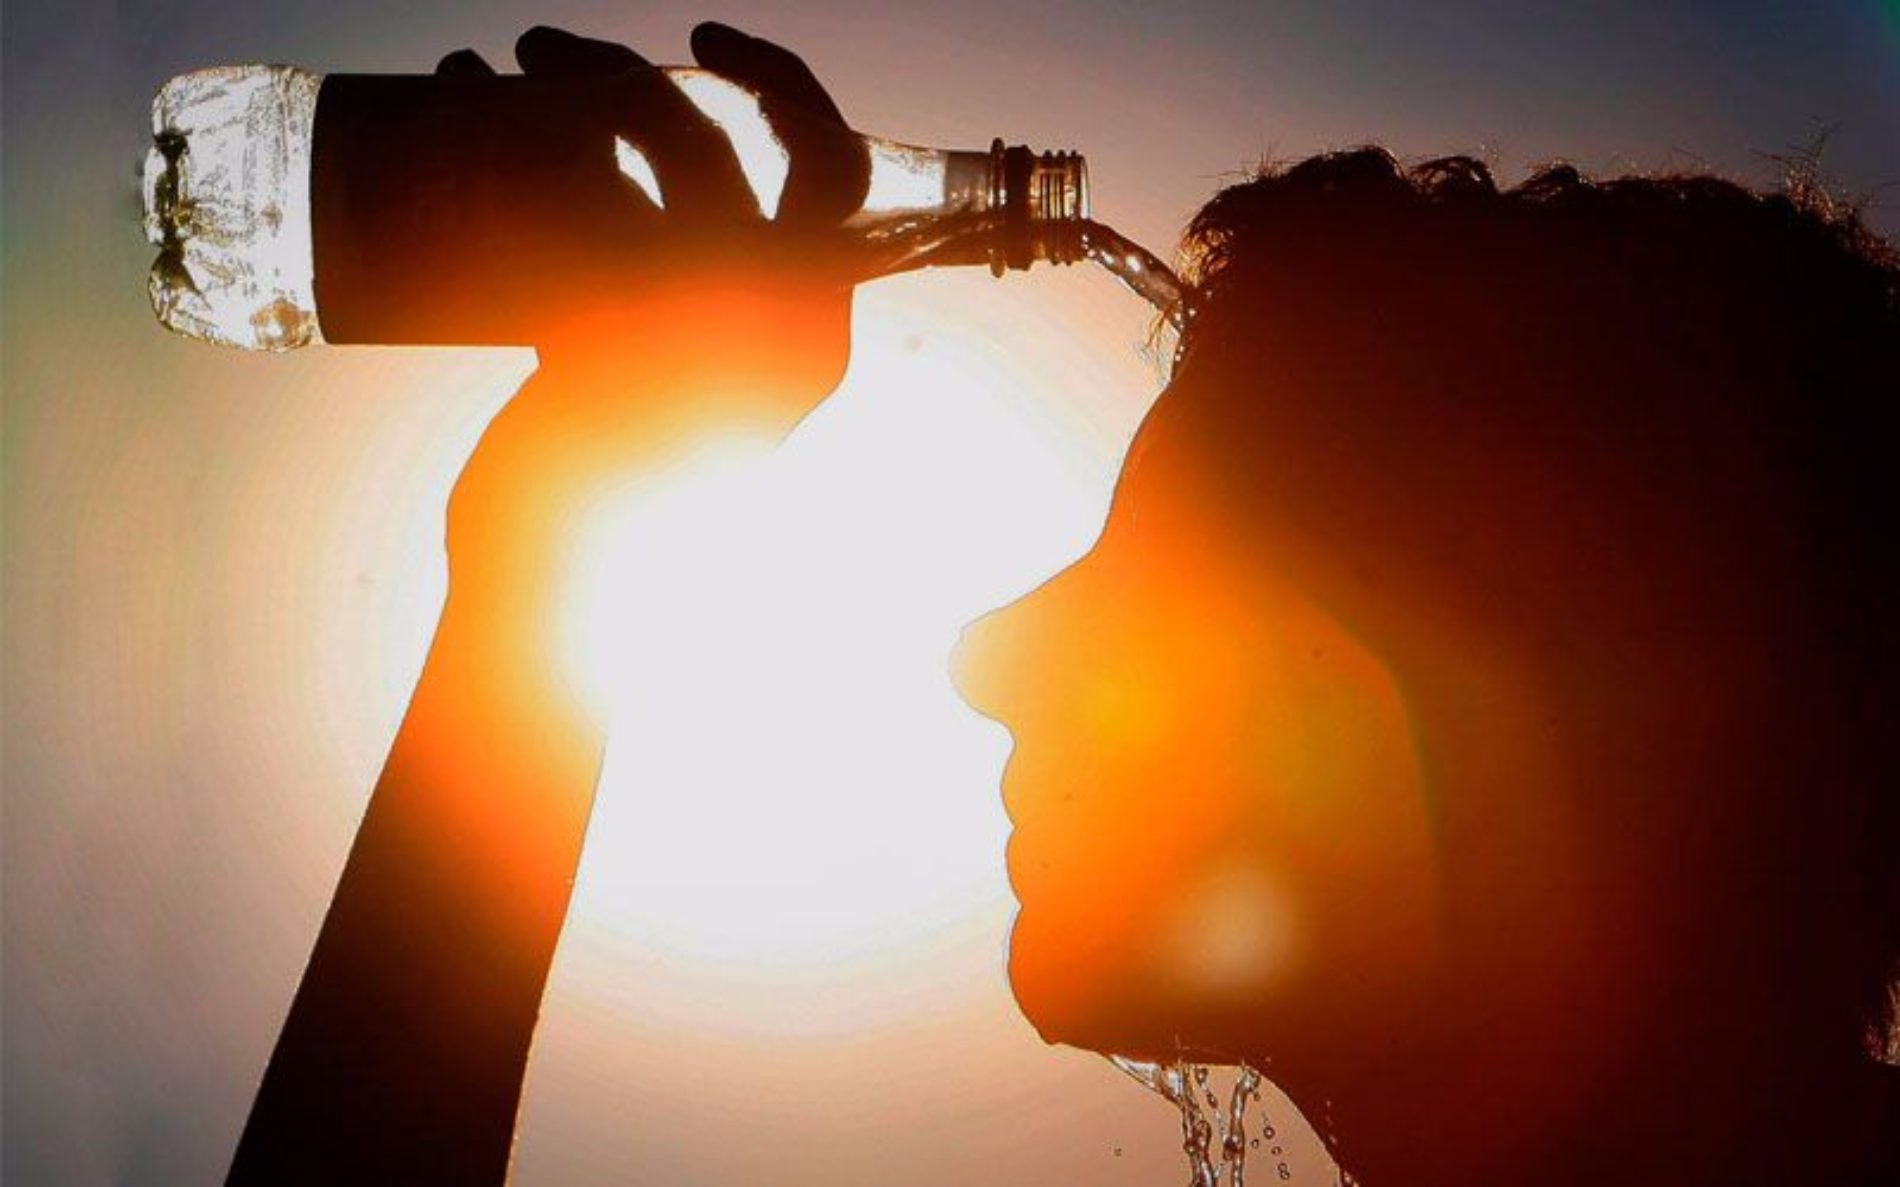 Temperaturas a rondar os 40 graus no domingo